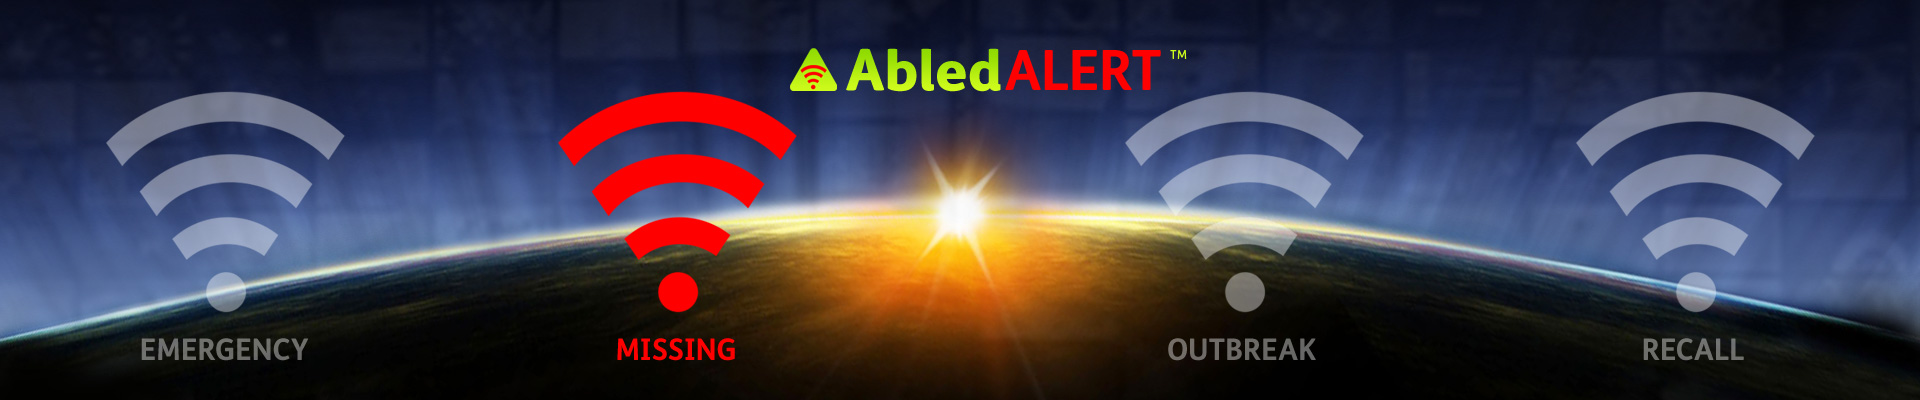 AbledALert Banner with the alert signal for Missing highlighted.